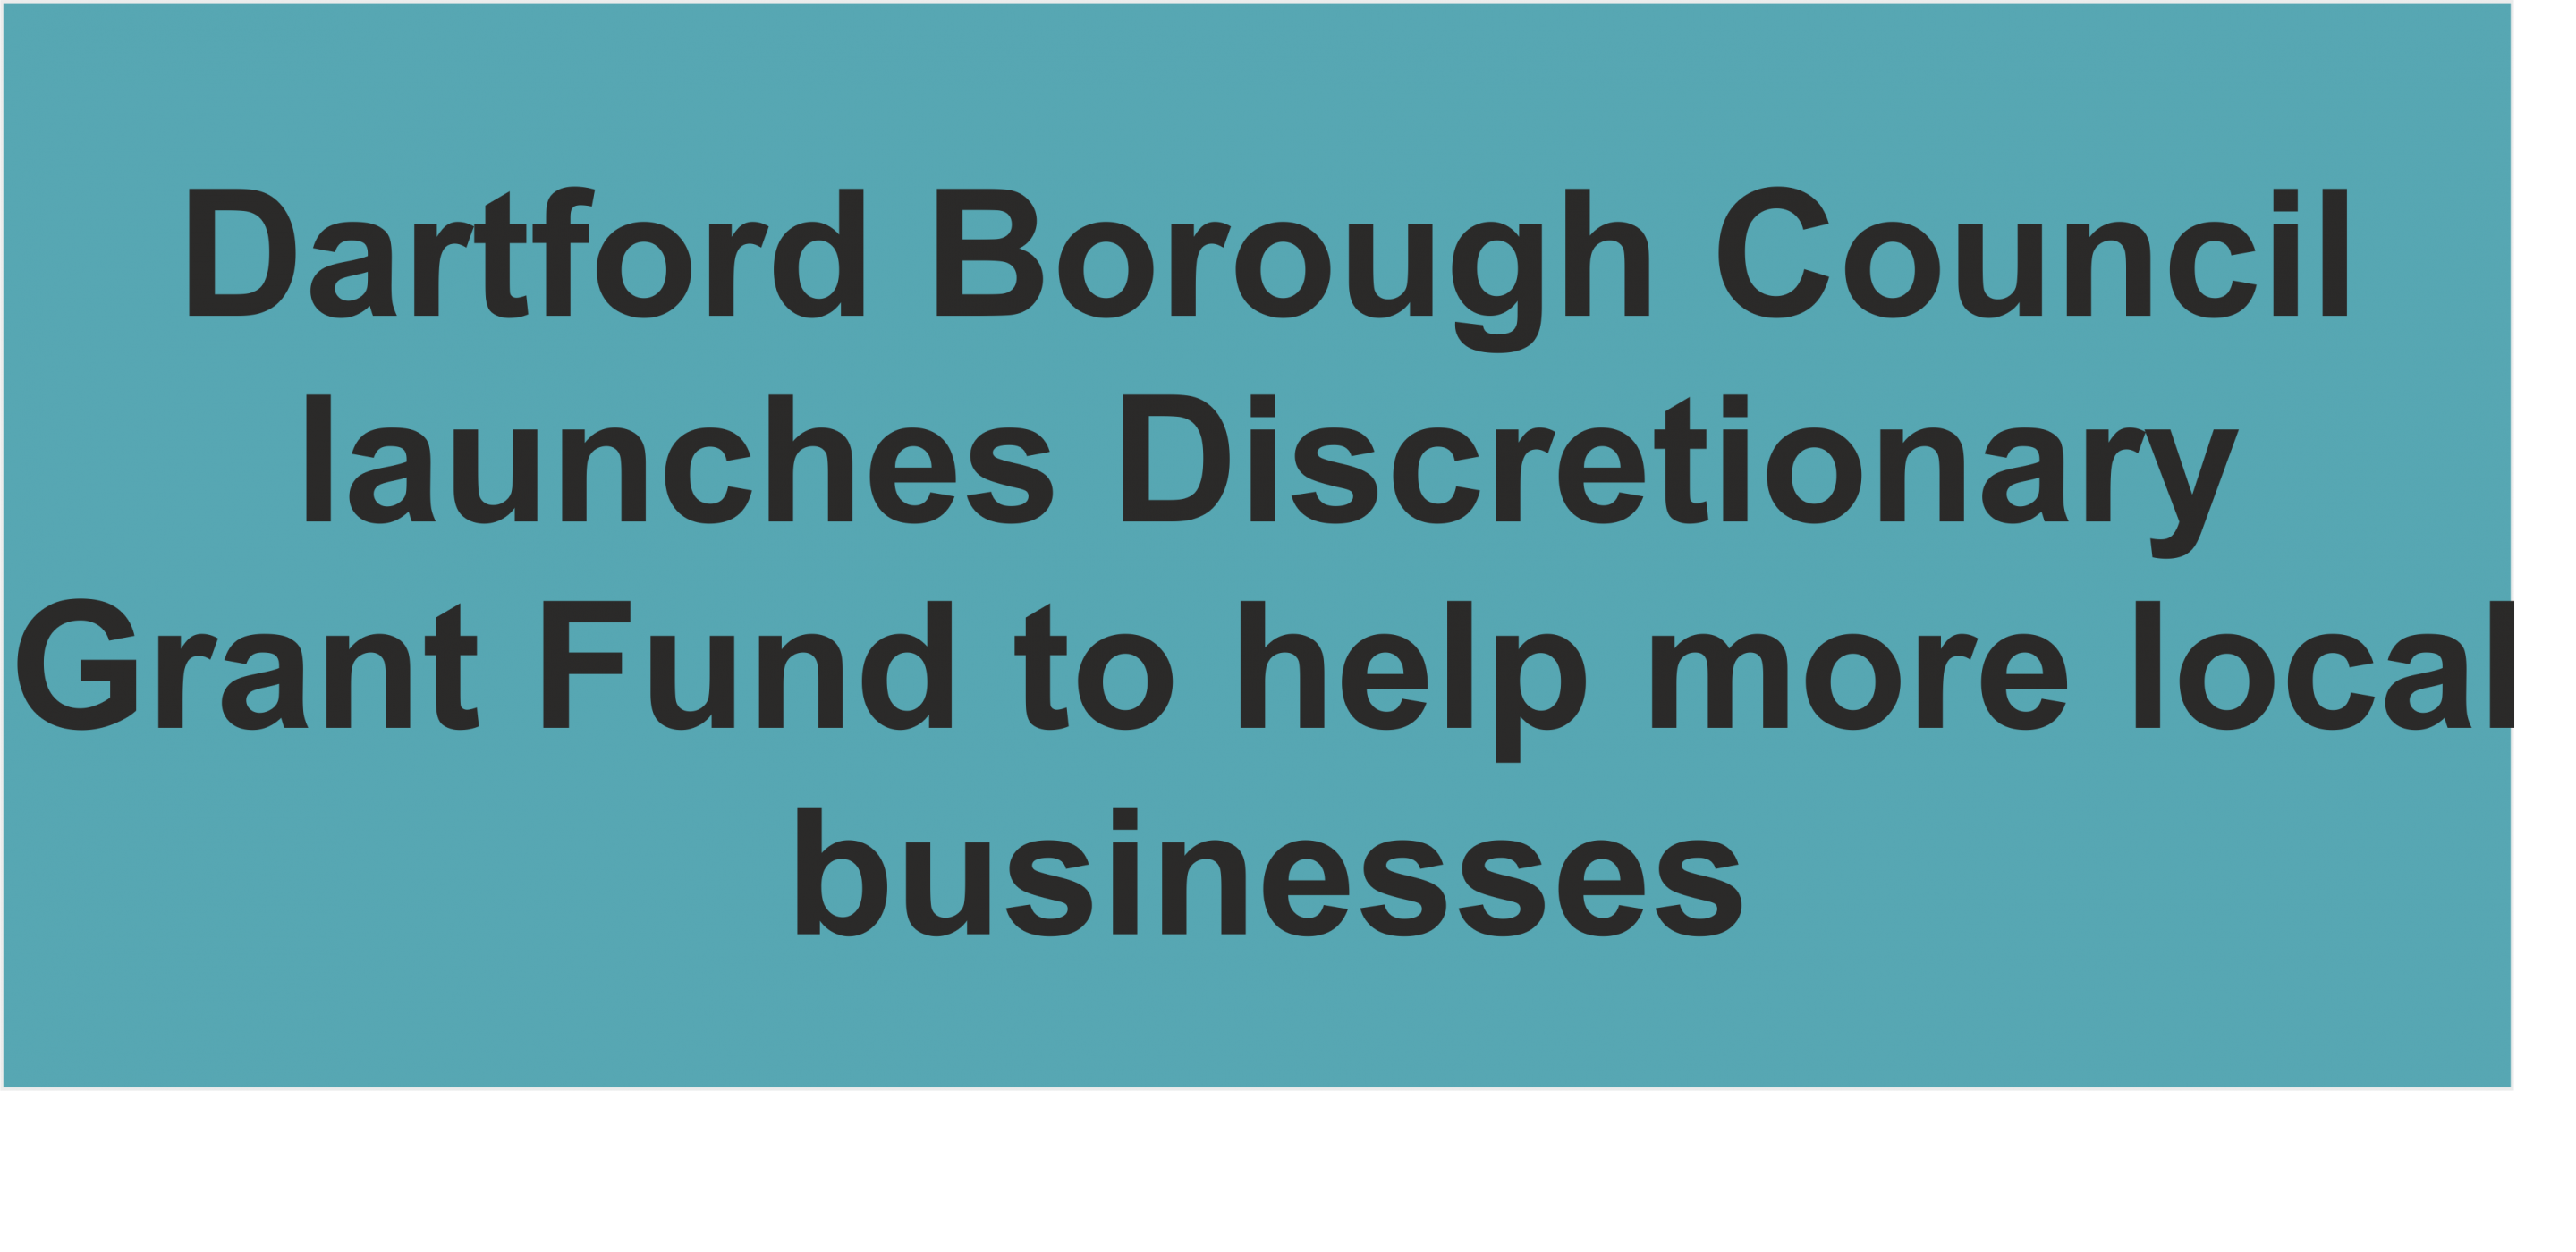 Dartford Borough Council launches Discretionary Grant Fund to  help more local businesses